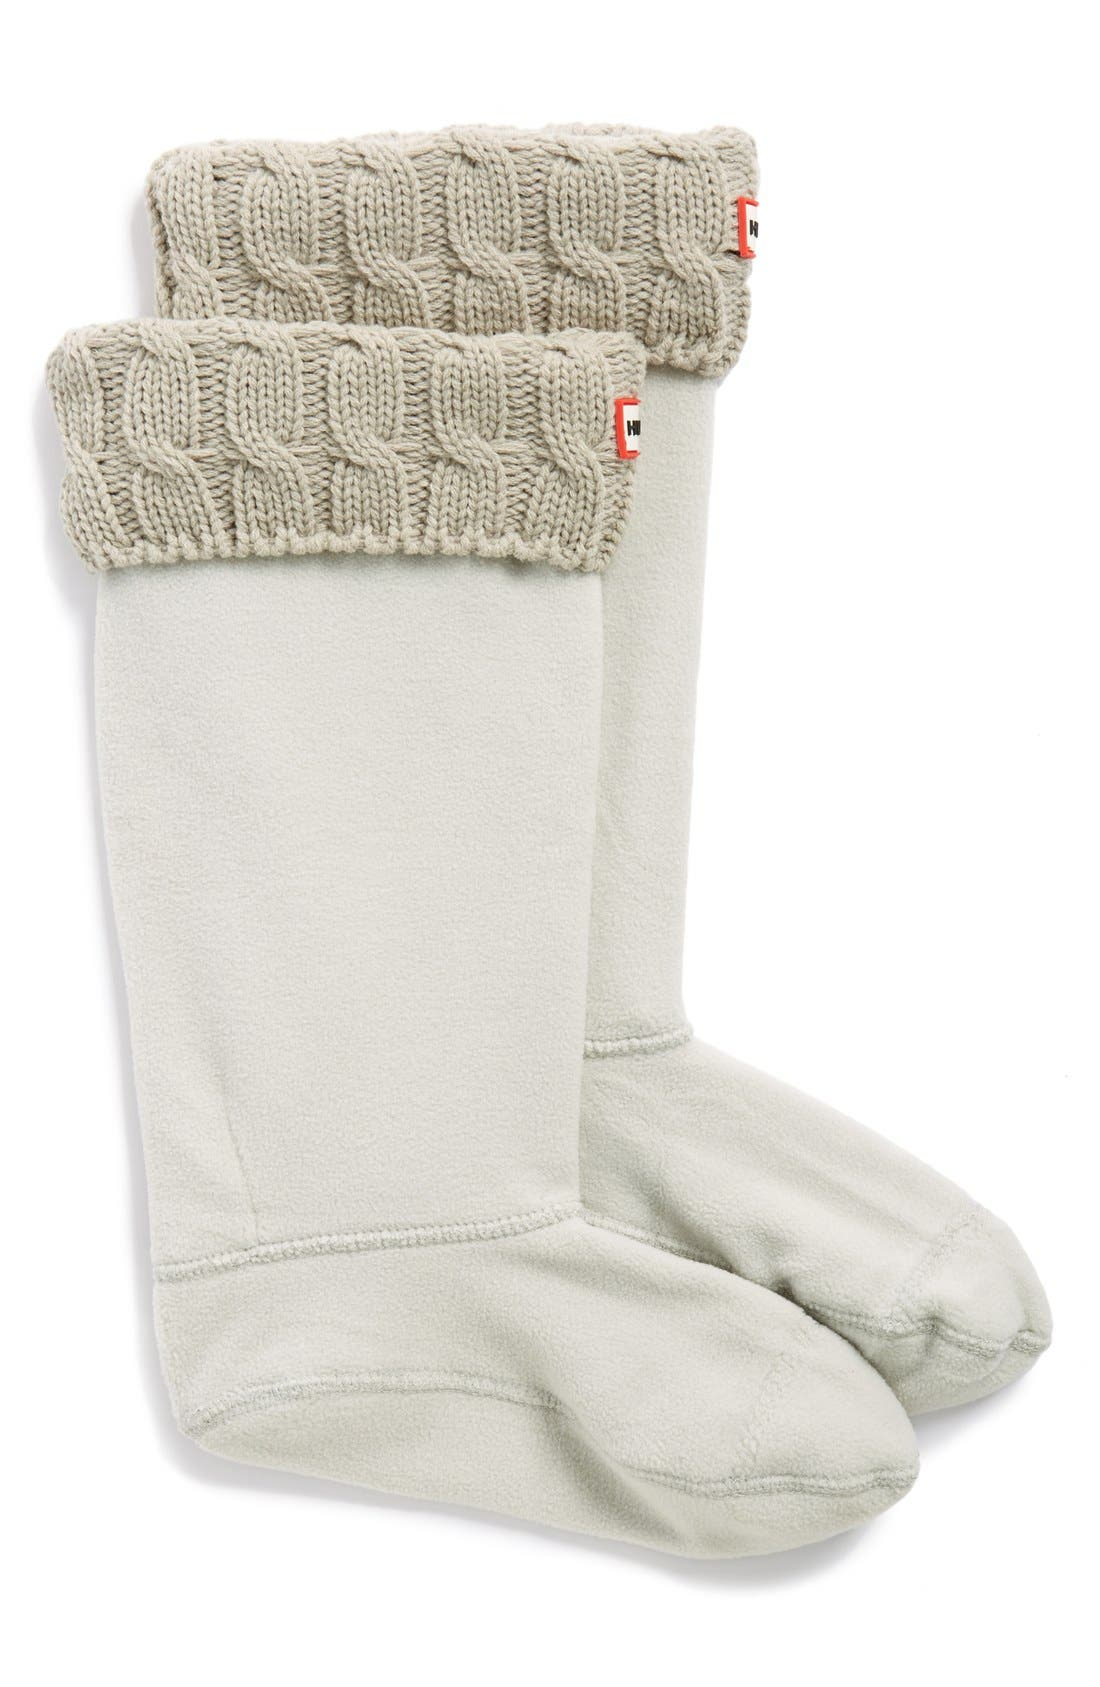 Original Tall Cable Knit Cuff Welly Boot Socks by Hunter